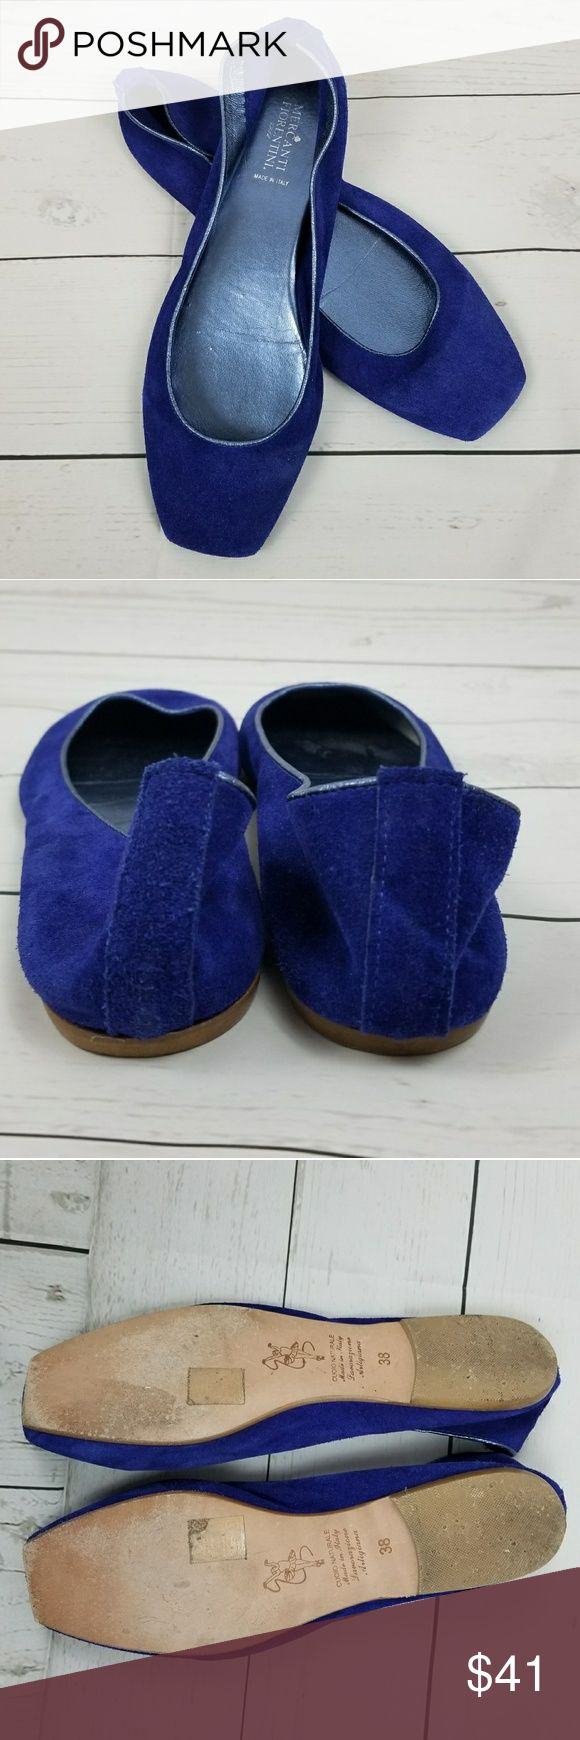 Mercanti Fiorentini Royal Blue Ballet Size 38 Mercanti Fiorentini Royal Blue Ballet Size 38 Has some light wear on top and on soles Mercanti Fiorentini Shoes Flats & Loafers